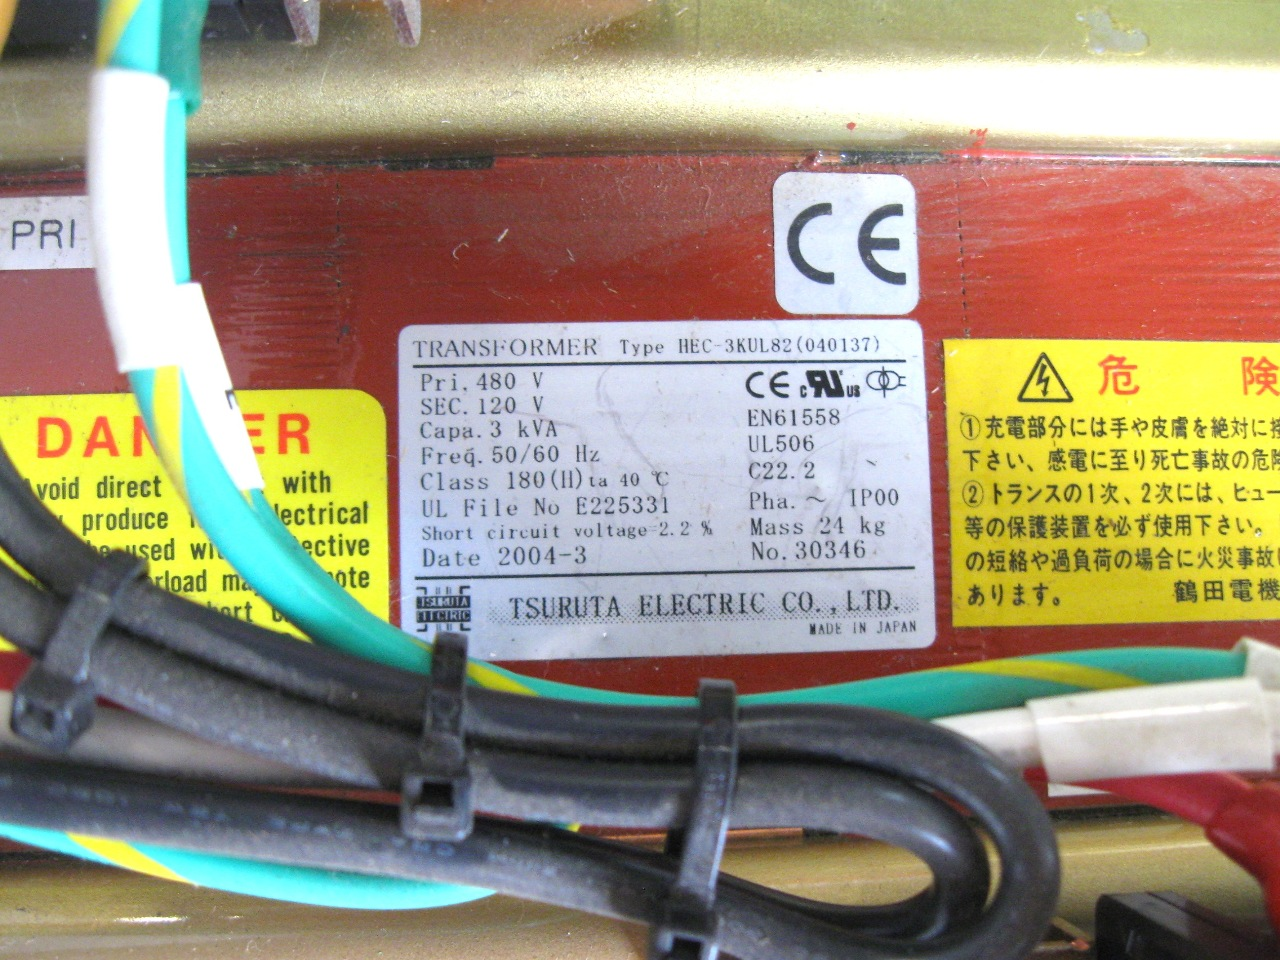 hight resolution of 3kva 480 to 120 transformer wiring 480 volt 3 phase wiring apoint tsuruta electric hec 3kul82